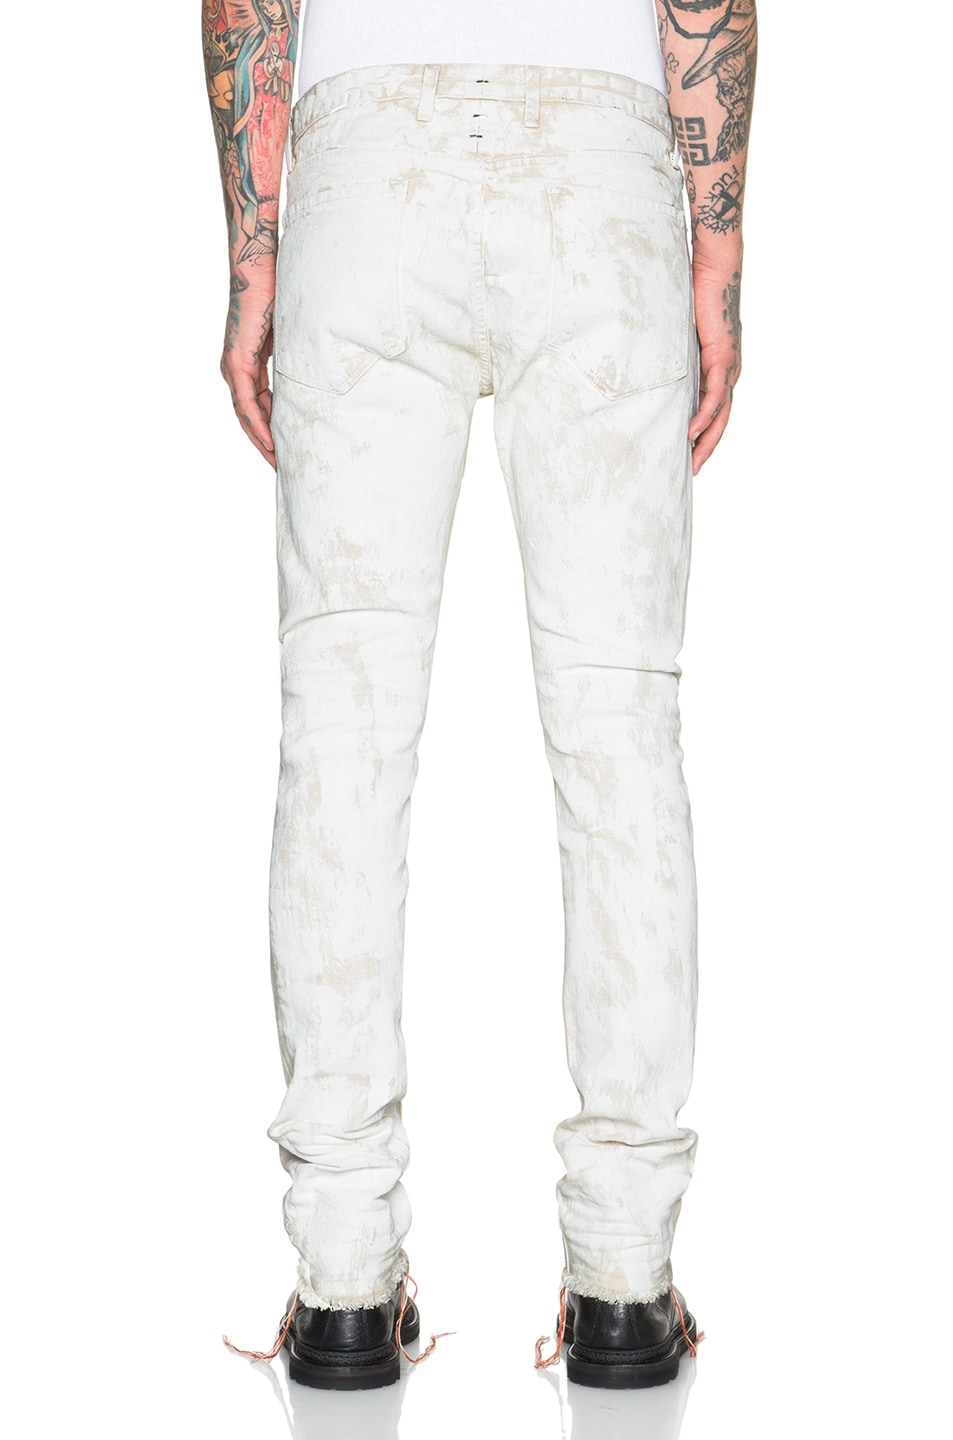 Image 4 of Mr. Completely White Jeans in White Clay in White